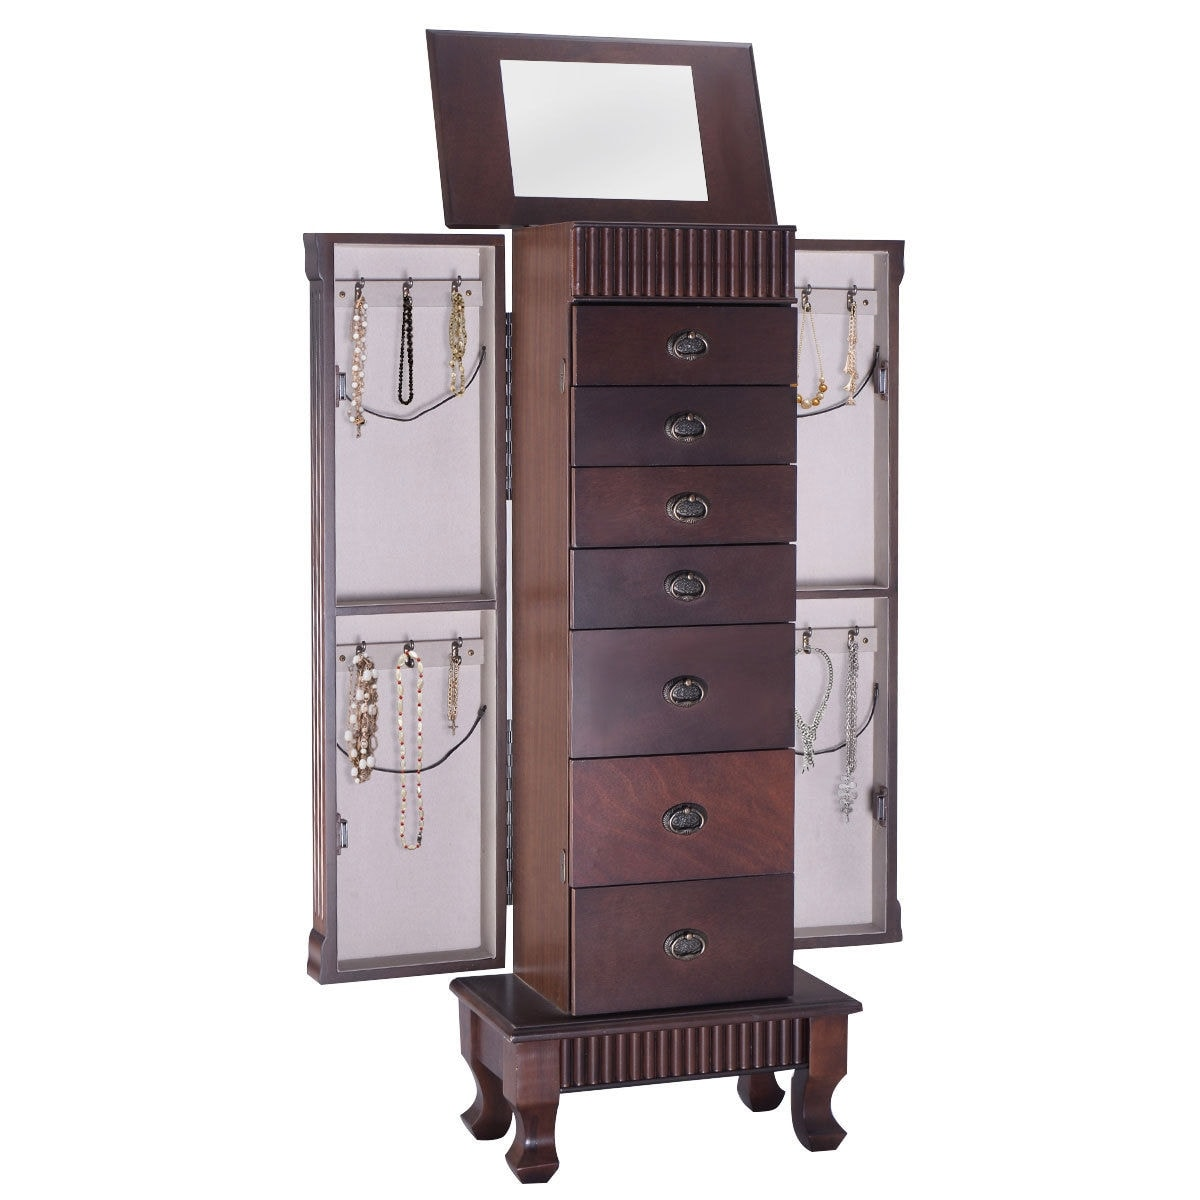 cabinets standing box wood jewelry furniture chest cabinet organizer new storage armoire necklace